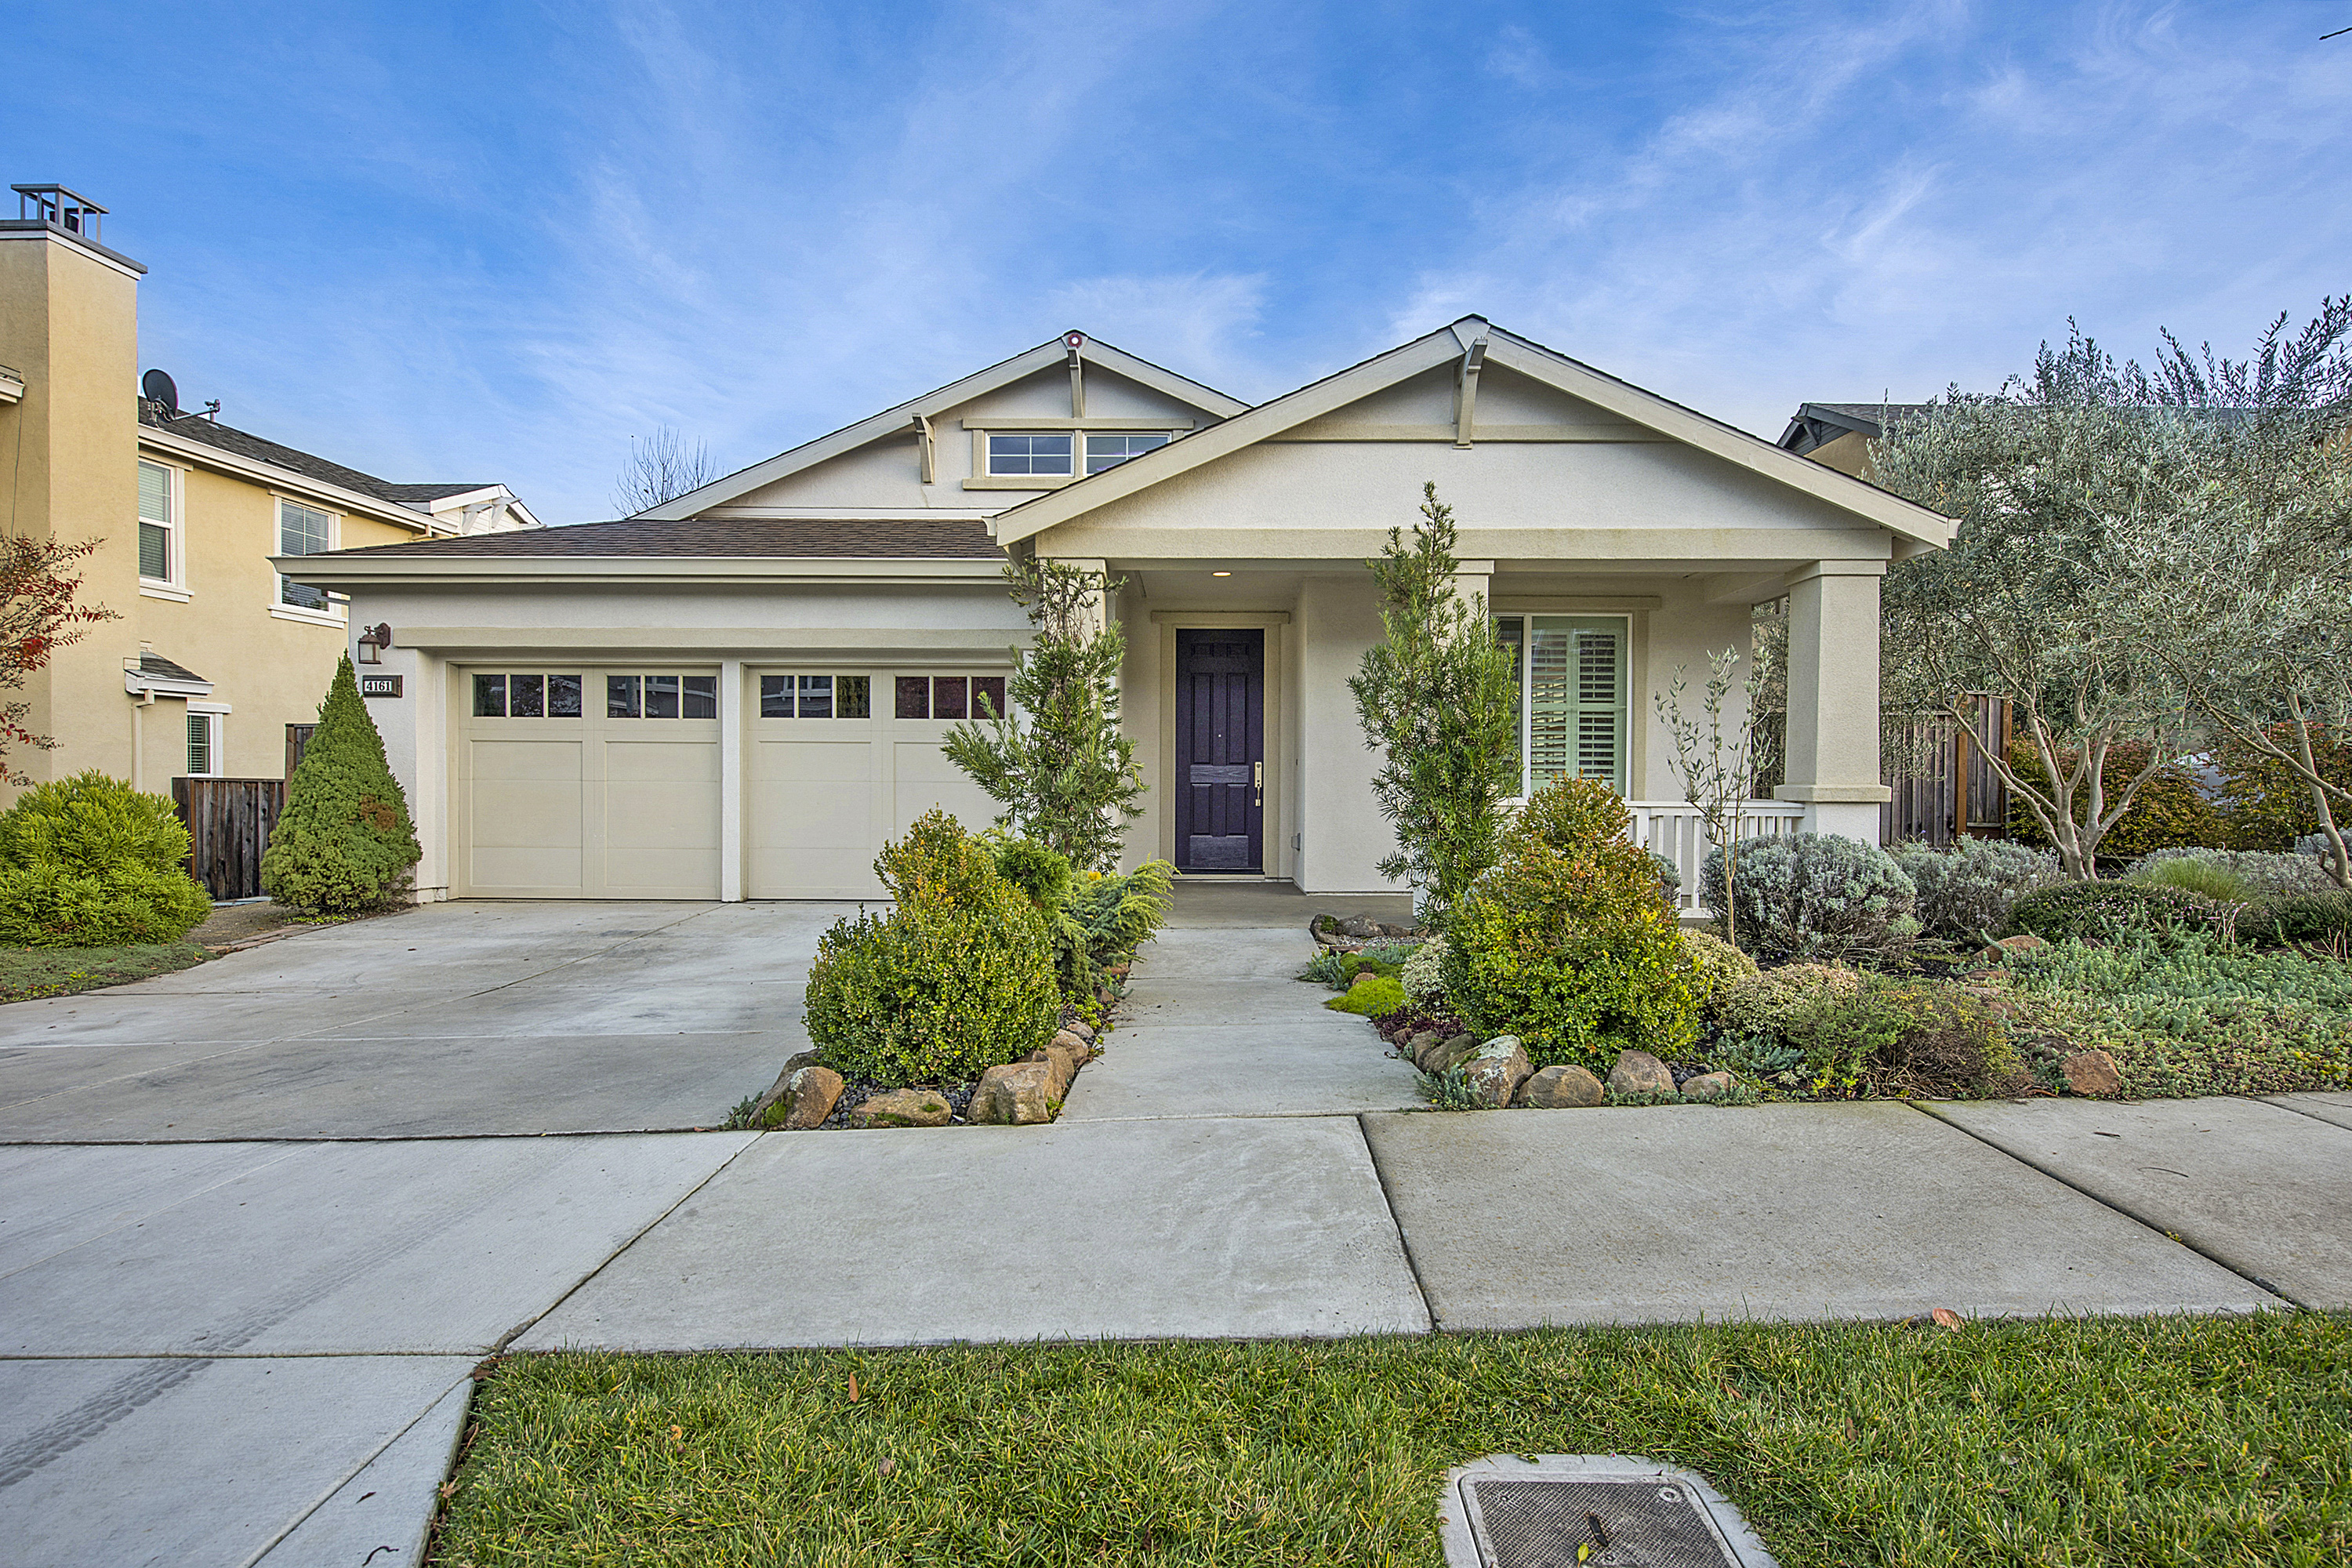 Single Family Home for Sale at 4161 Casper Way Napa, California, 94558 United States